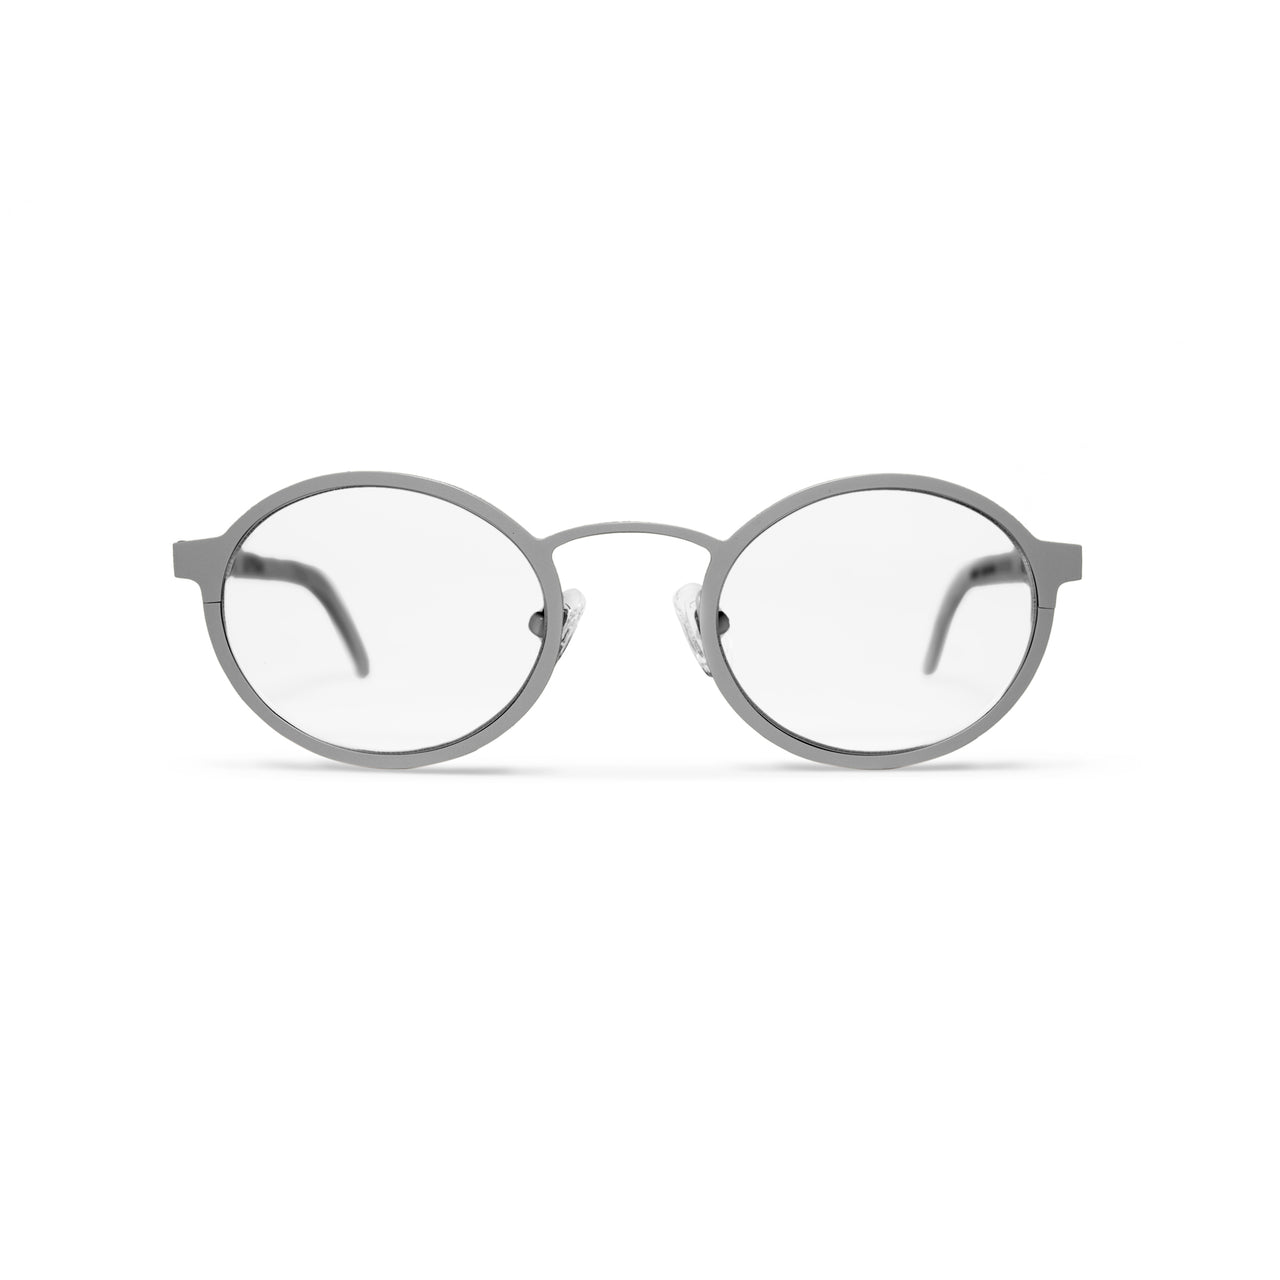 Metal. Brushed Silver. Clear Lens. - BLYSZAK eyewear eyewear - eyewear, optical, sunglasses